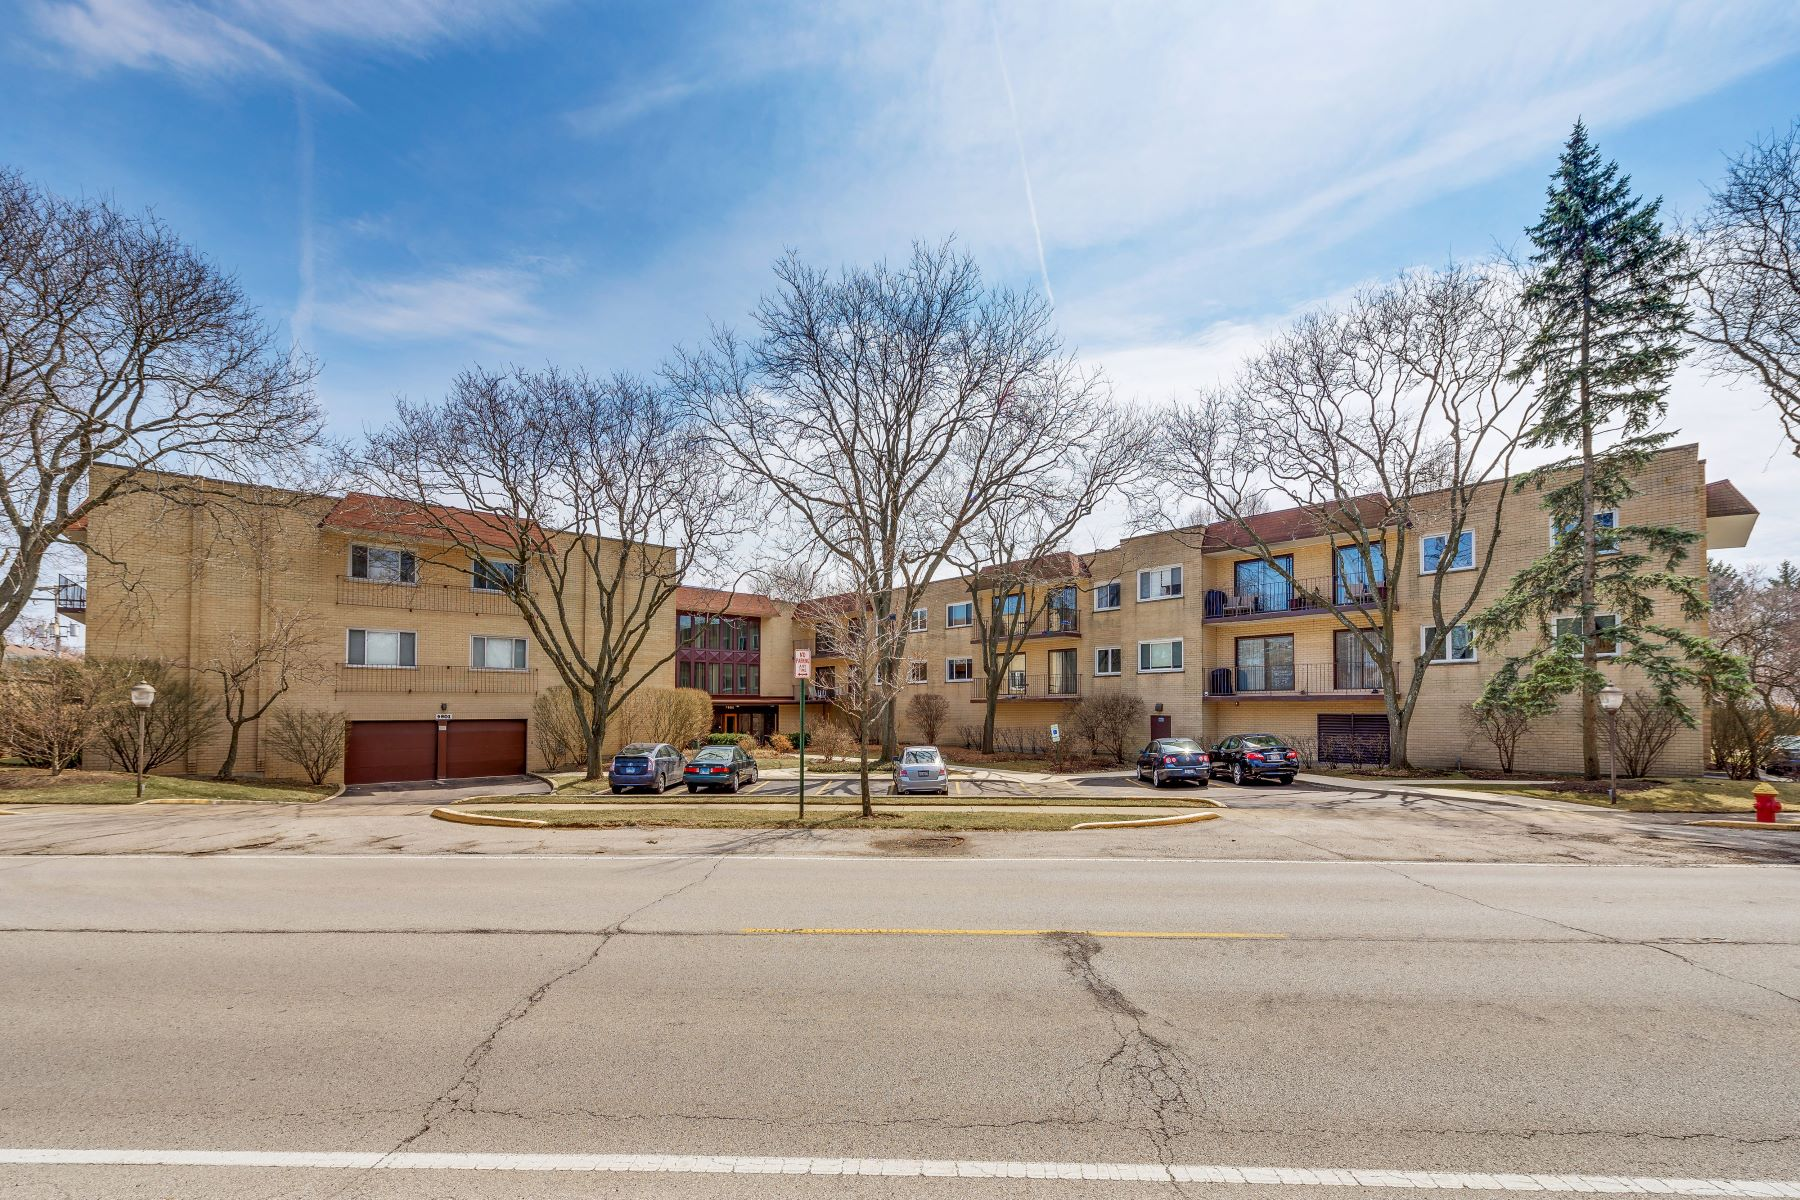 Condominium for Sale at Spacious And Bright 9801 Gross Point Road Unit 221 Skokie, Illinois 60076 United States